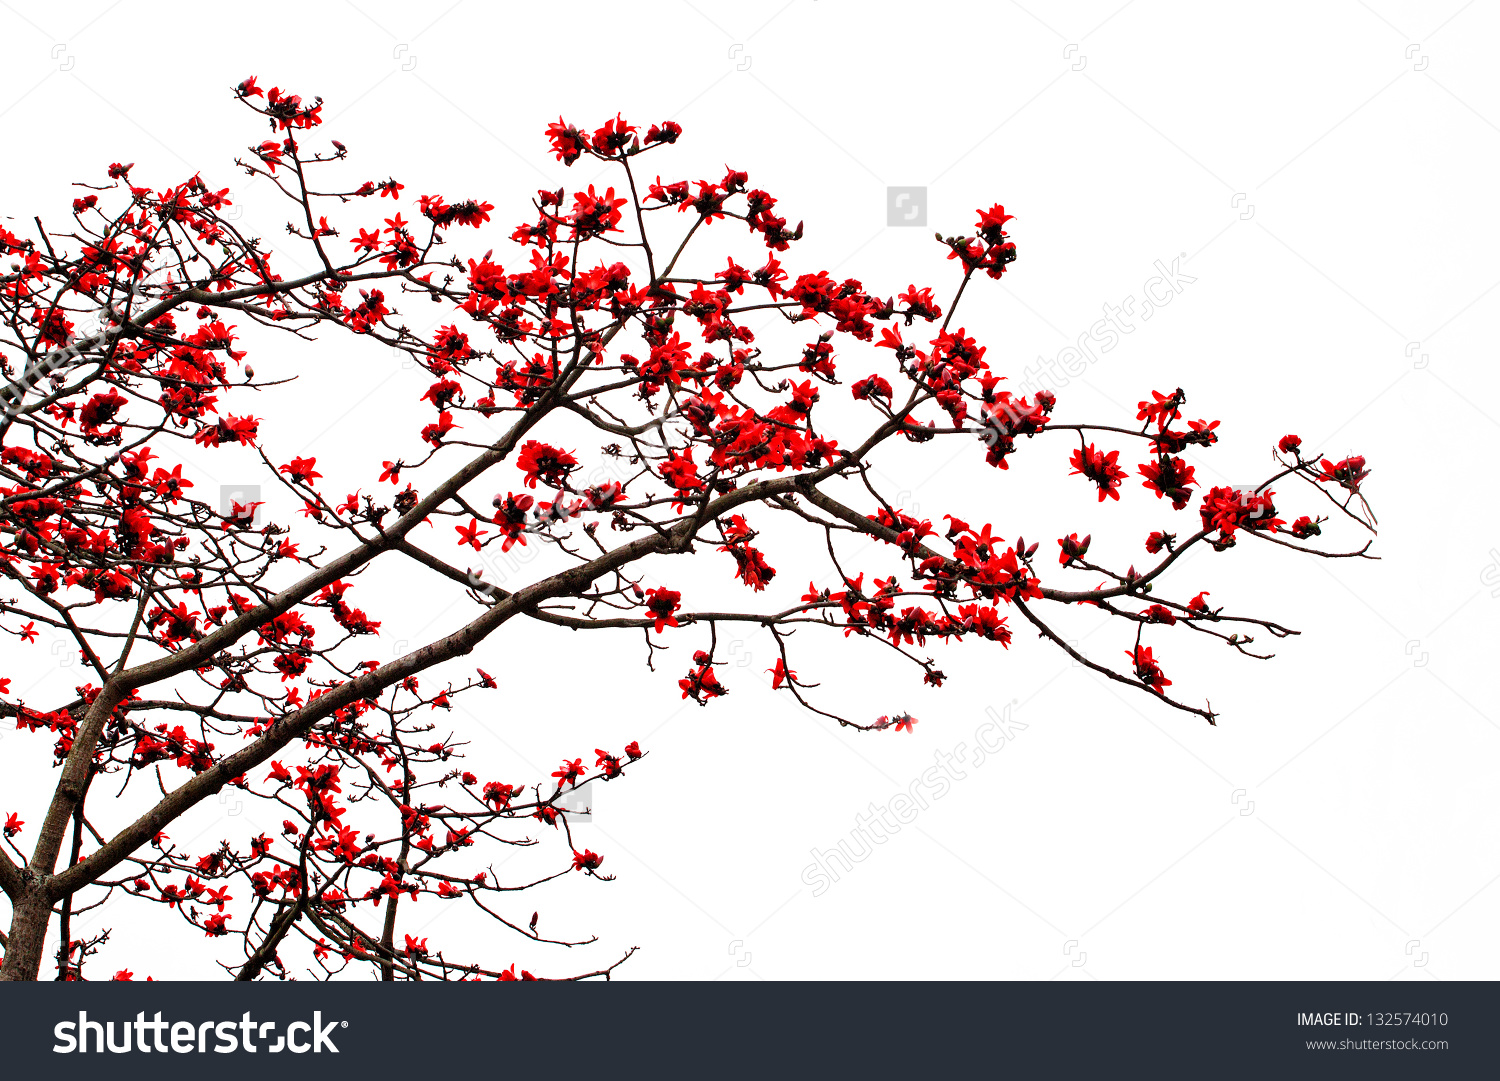 Blossom Red Silk Cotton Tree Latin Stock Photo 132574010.